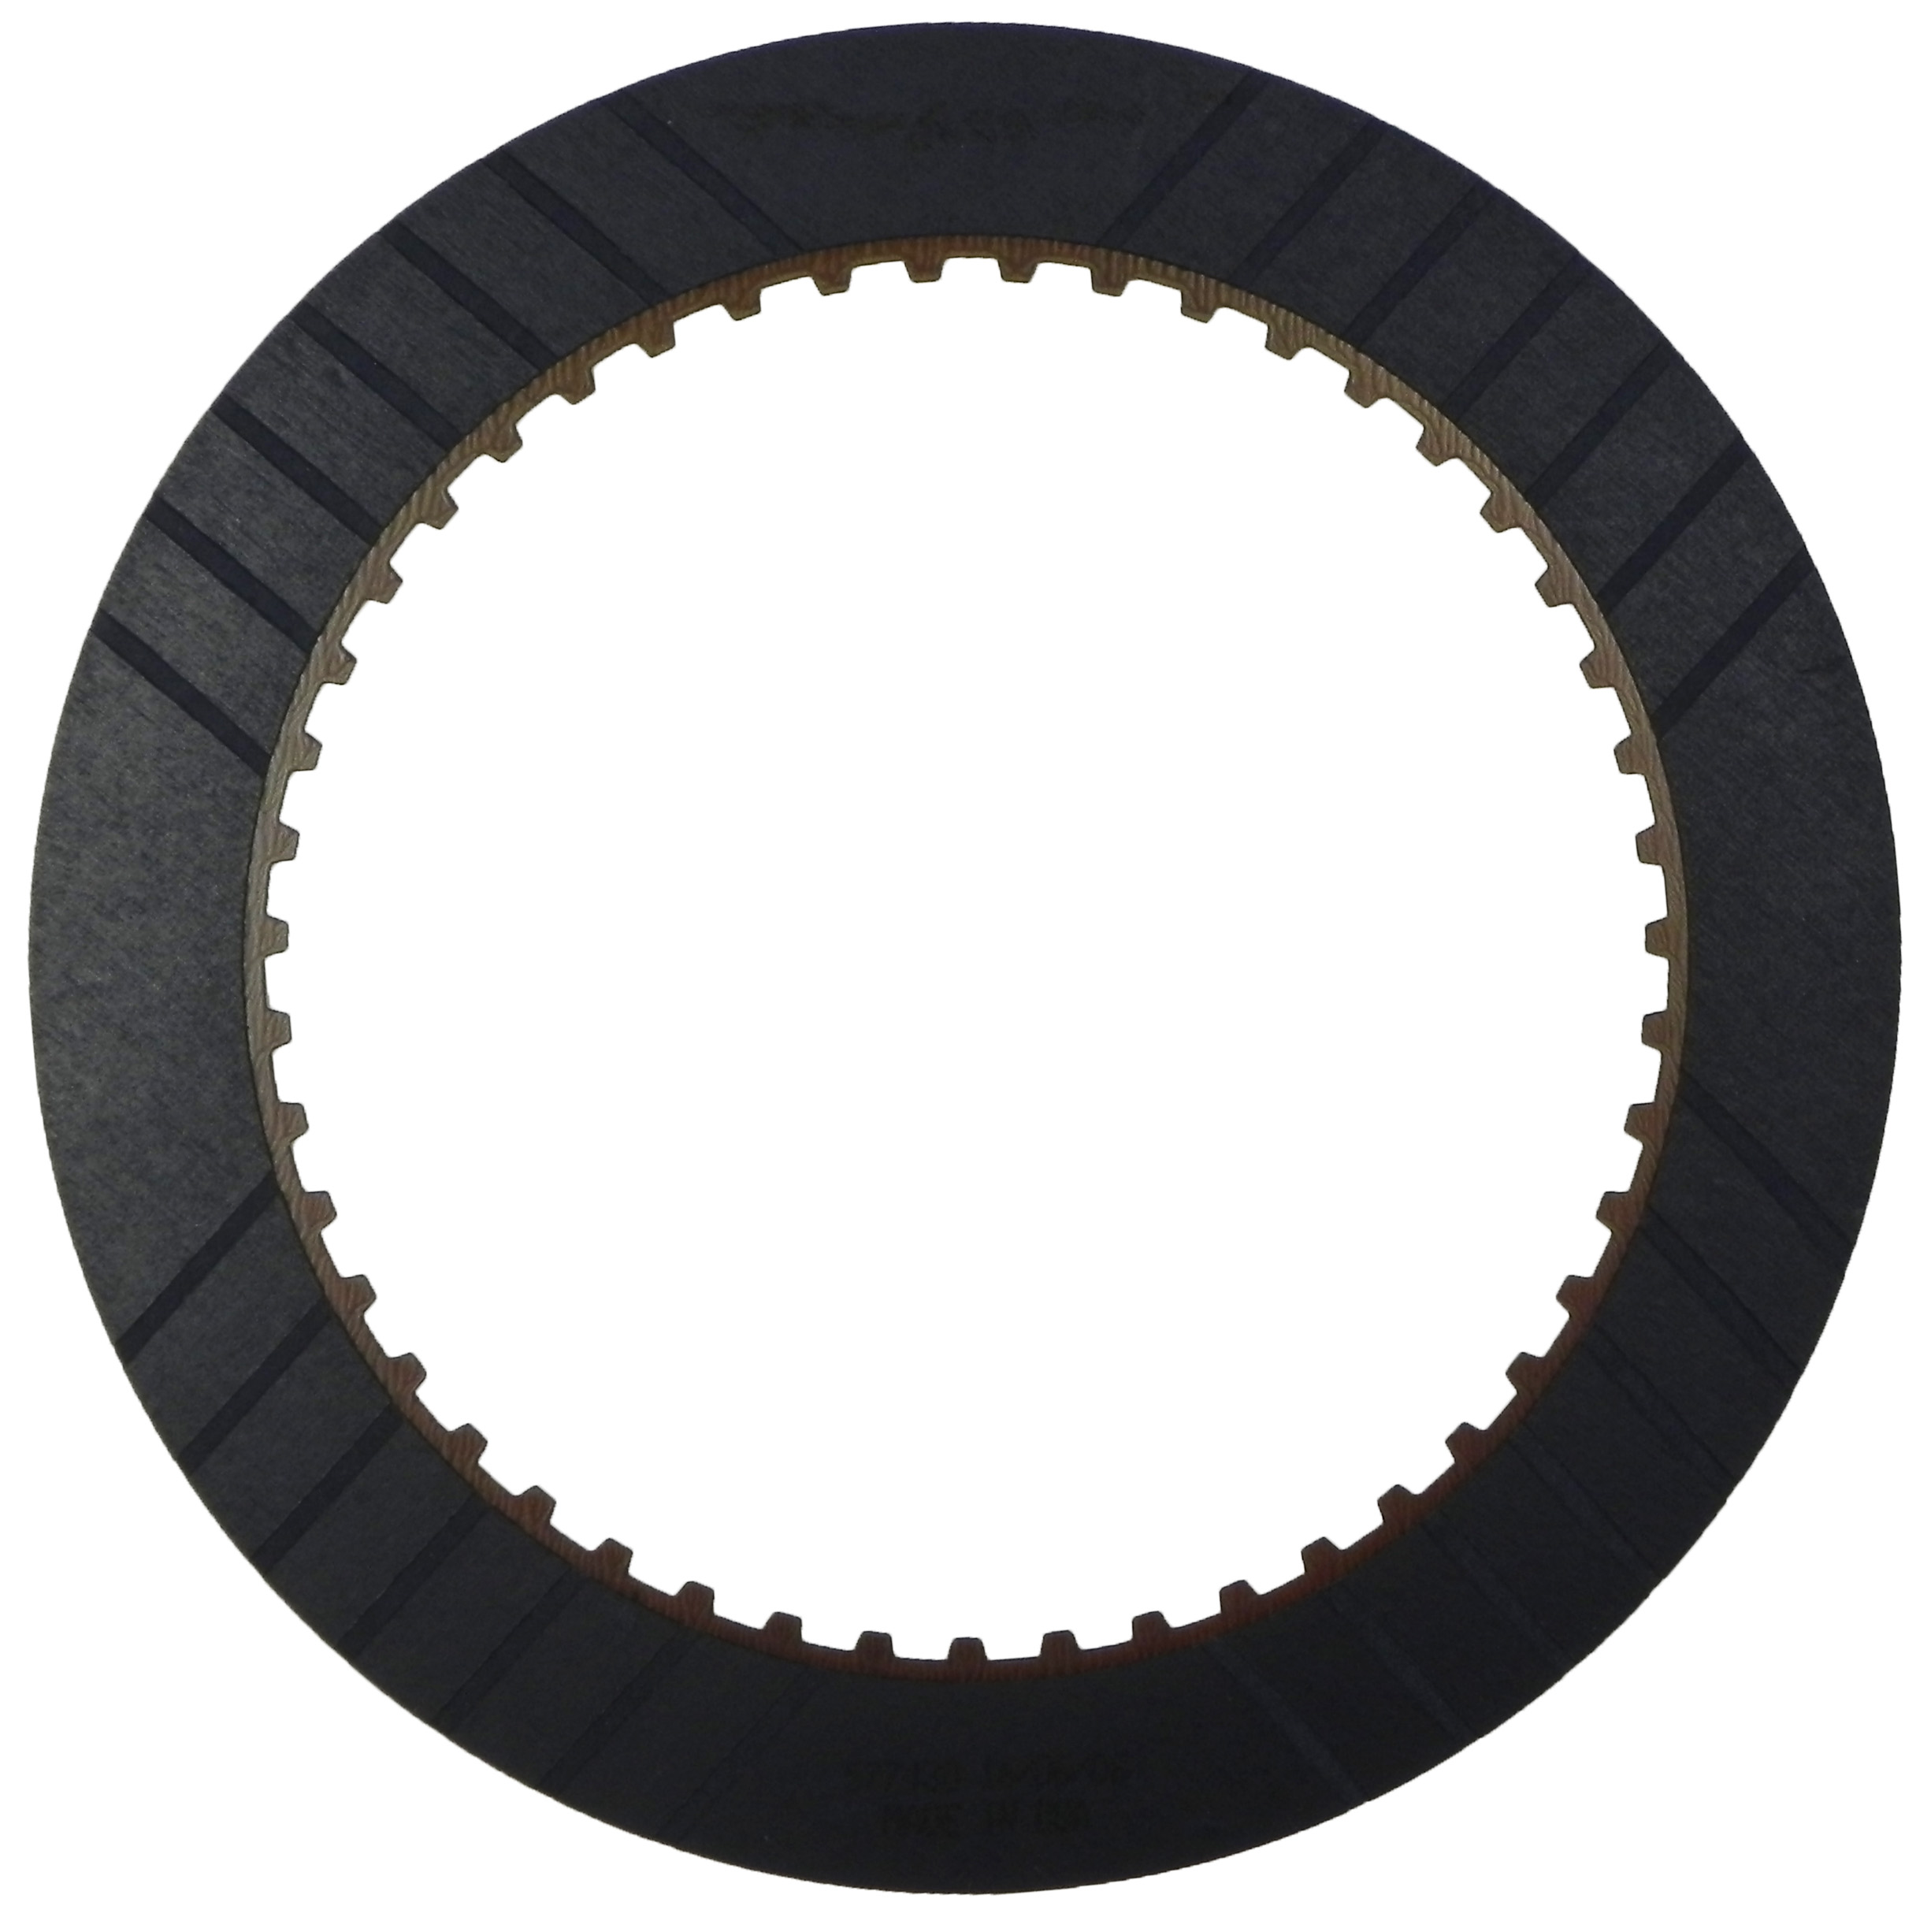 R577430 | 1964-1990 Friction Clutch Plate GEN 2, Blue Plate Special Intermediate, GEN 2, Race Product